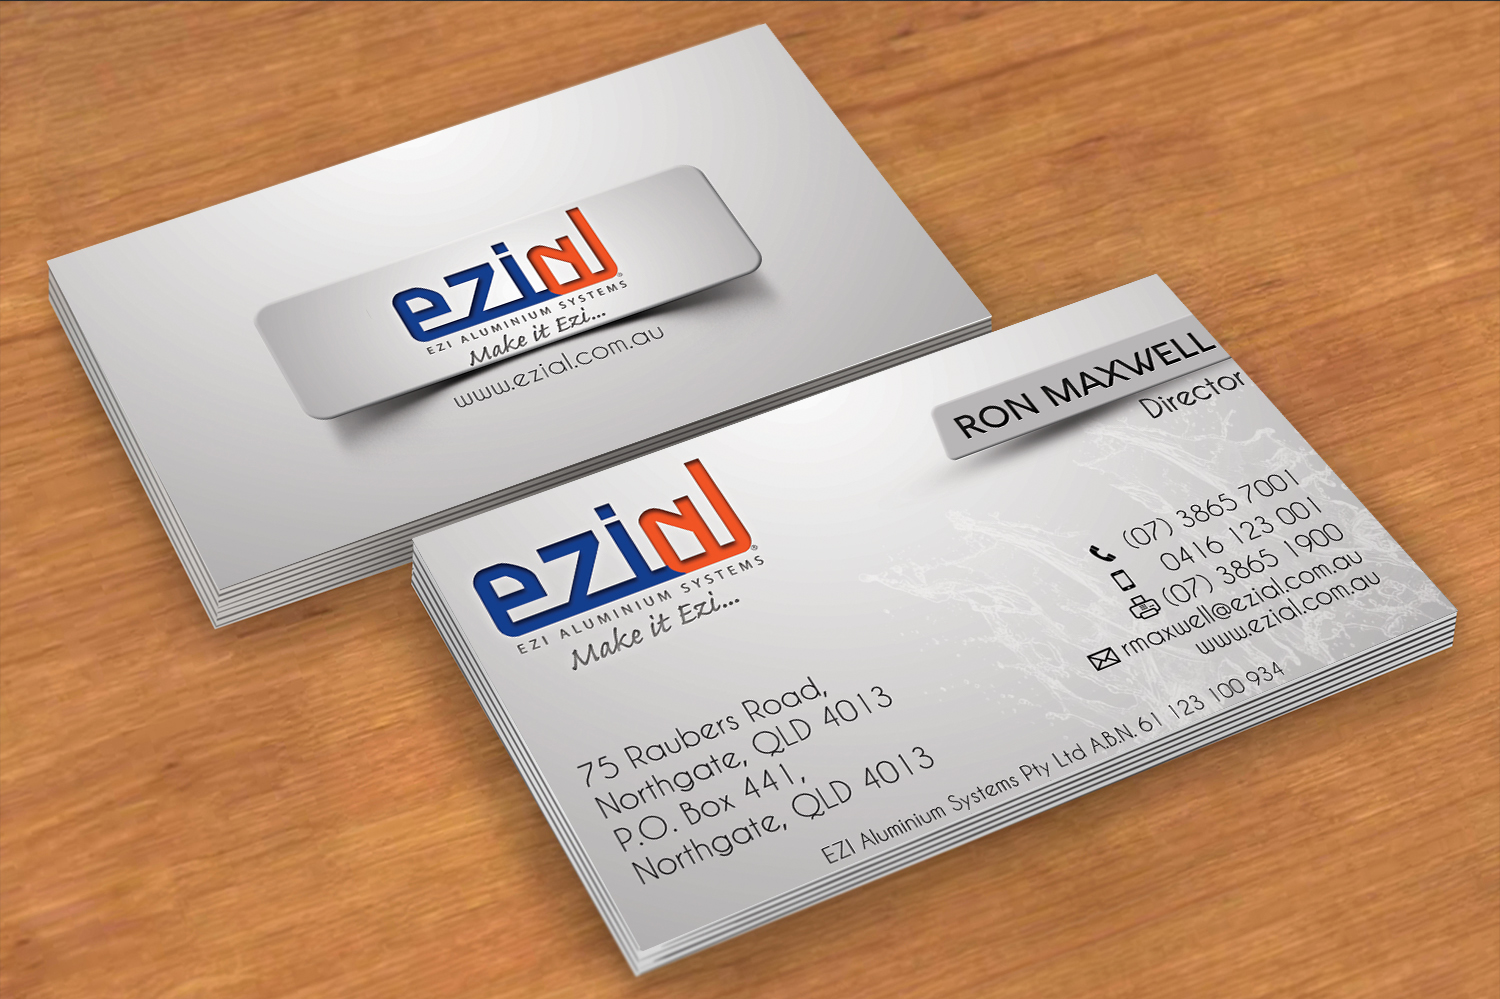 Modern professional building business card design for ezi business card design by vikramrajashekar for ezi aluminium systems pty ltd design colourmoves